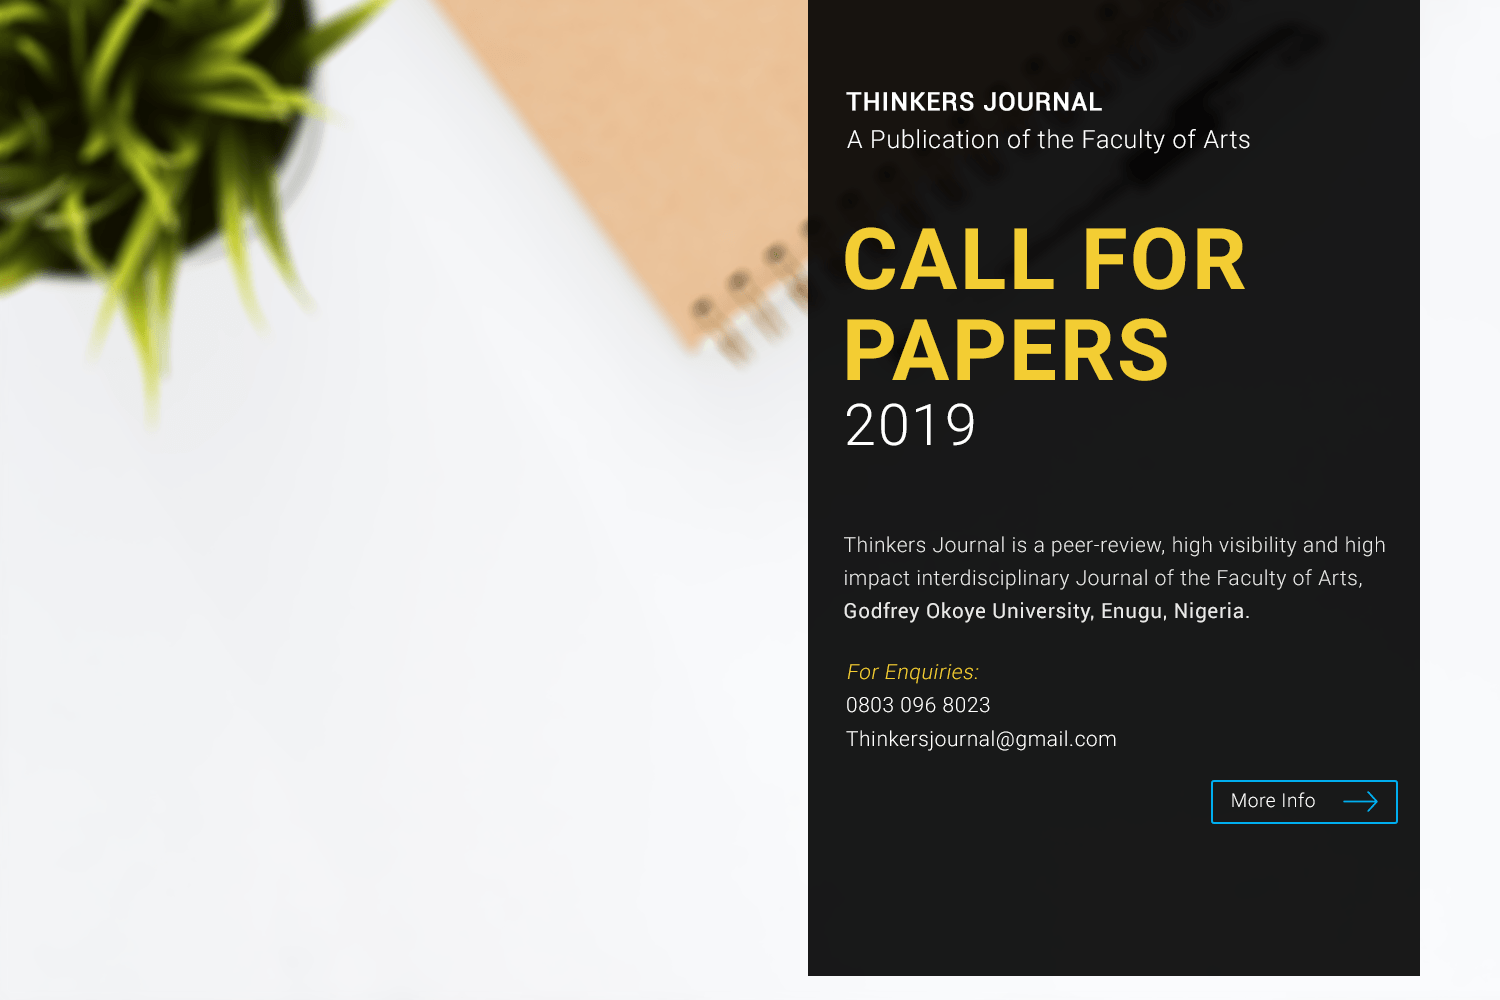 THINKERS JOURNAL – CALL FOR PAPERS